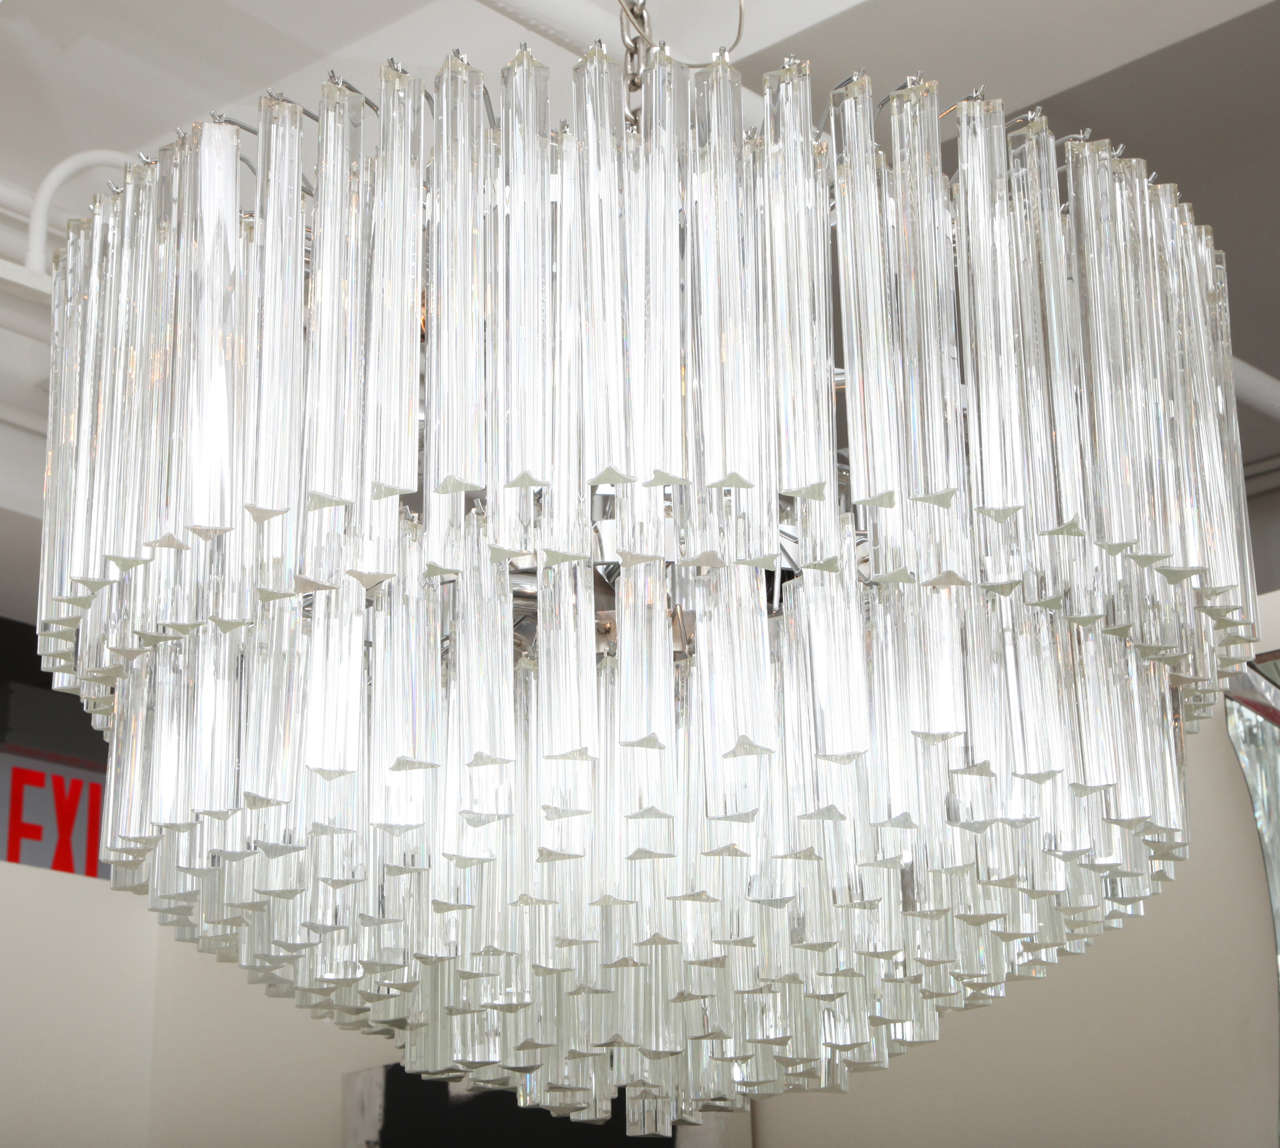 A unique and magnificent Murano glass chandelier in the style of Camer. 36